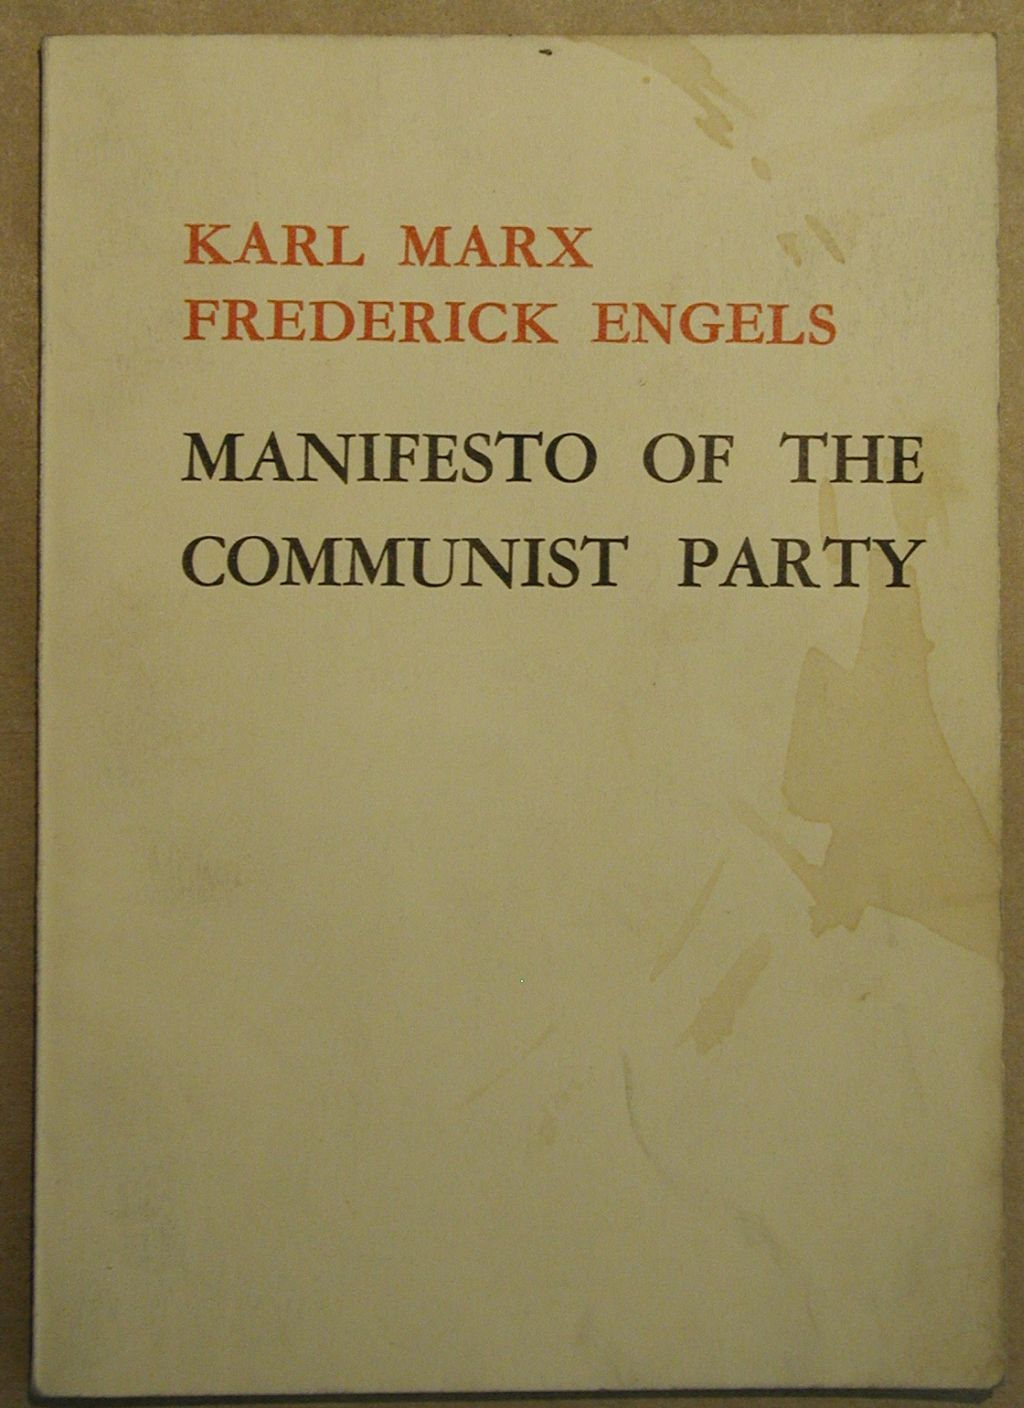 the importance of the manifesto by karl marx The communist manifesto attempts to explain the basic tenets of communism it argues that class struggle has been the driving force of history, and that the sides are determined by the era's means of production a revolution occurs when one side emerges as the ruling one karl marx, the pamphlets.